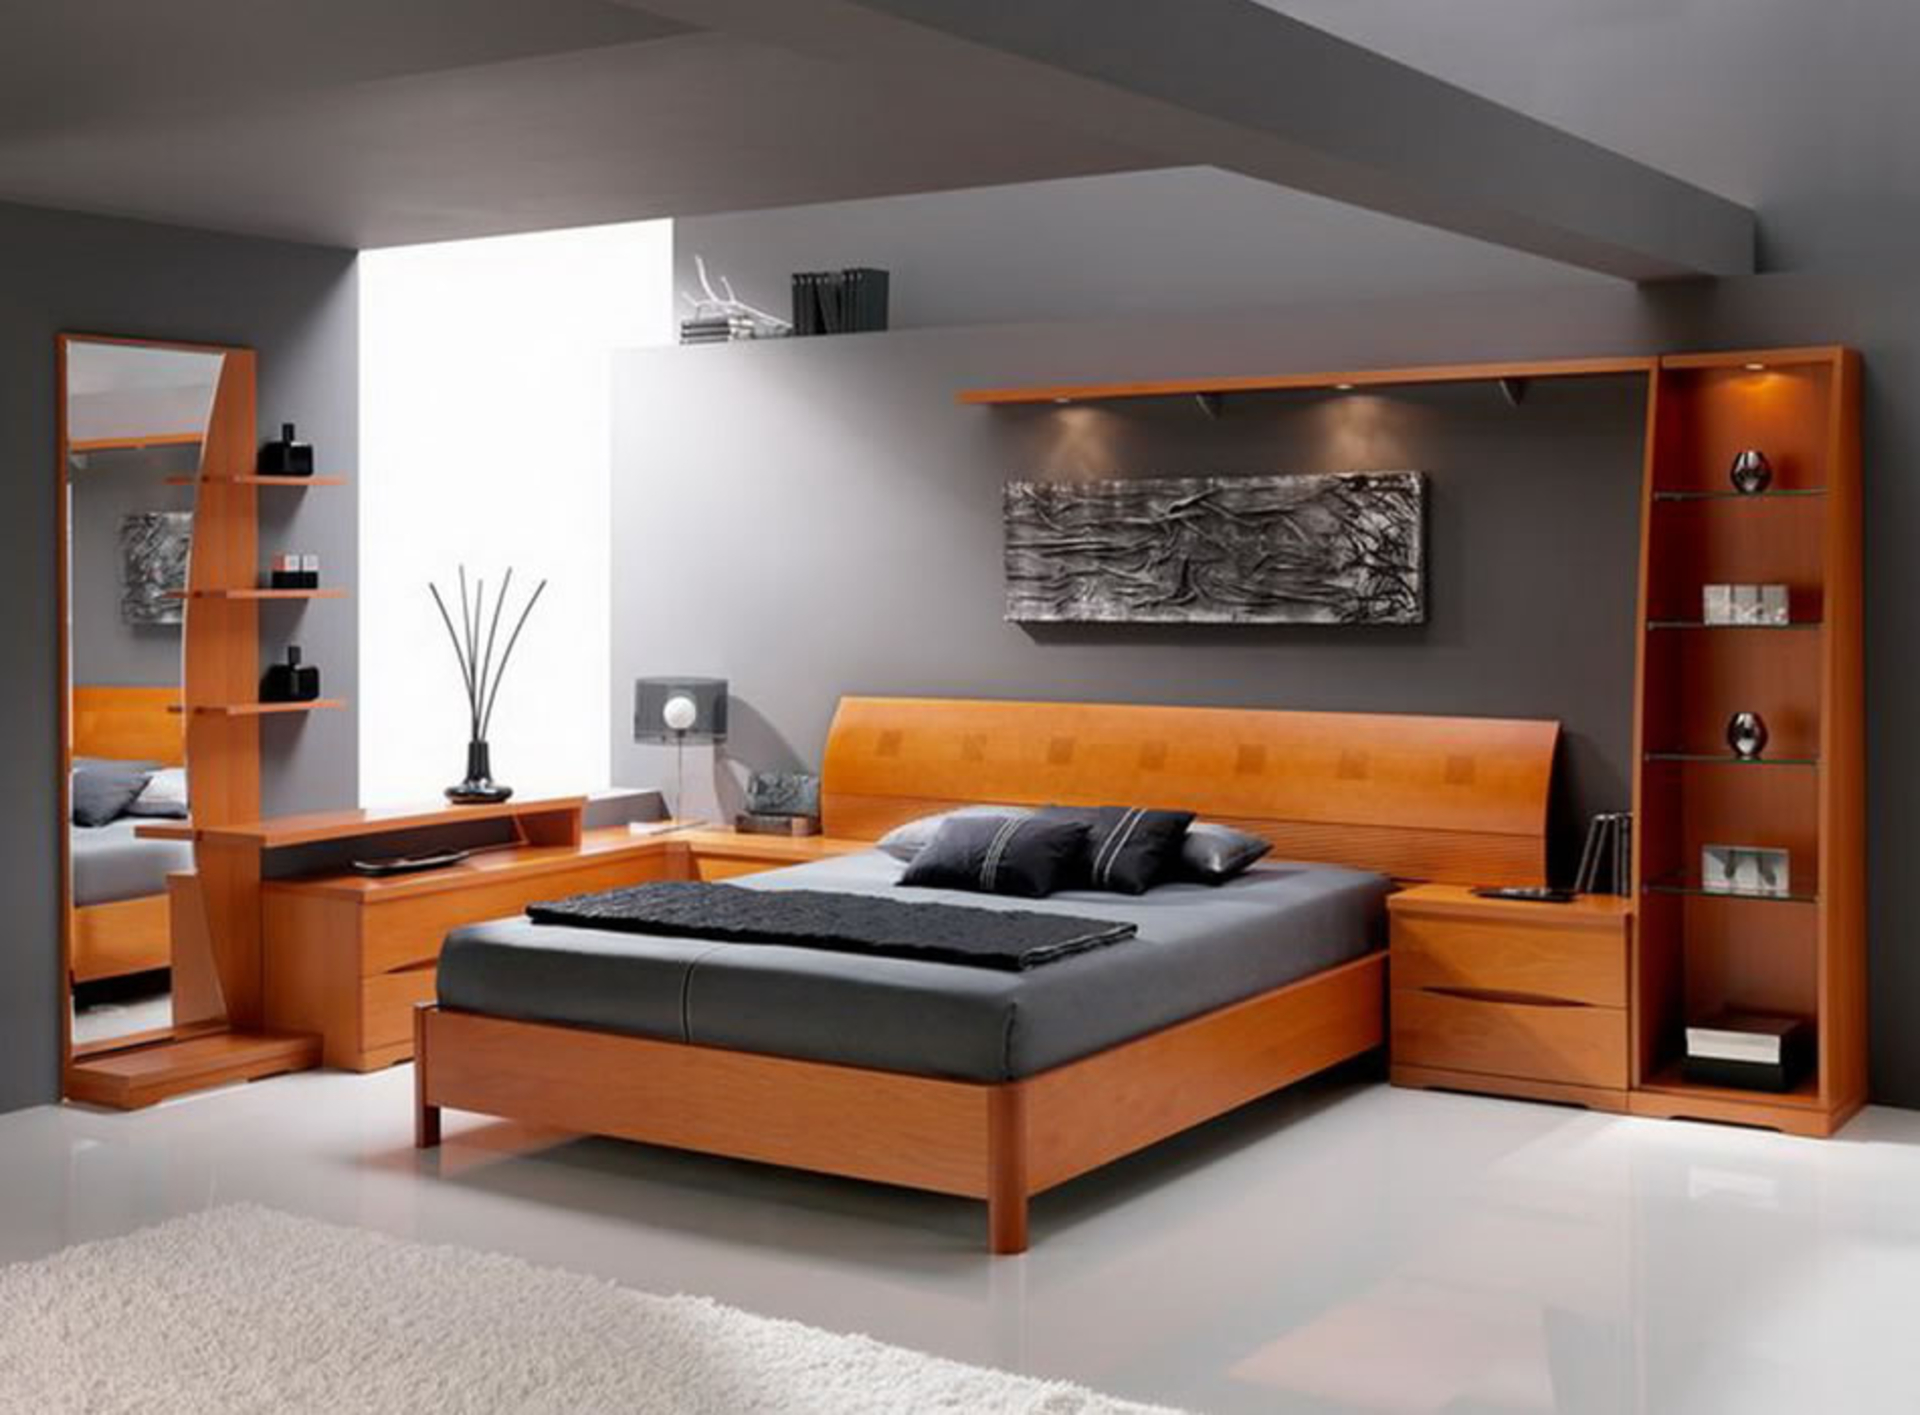 Bedroom Furniture Market Growing Popularity and Emerging Trends | Qumei Home Furnishings, IKEA, Sleepeezee, Durian